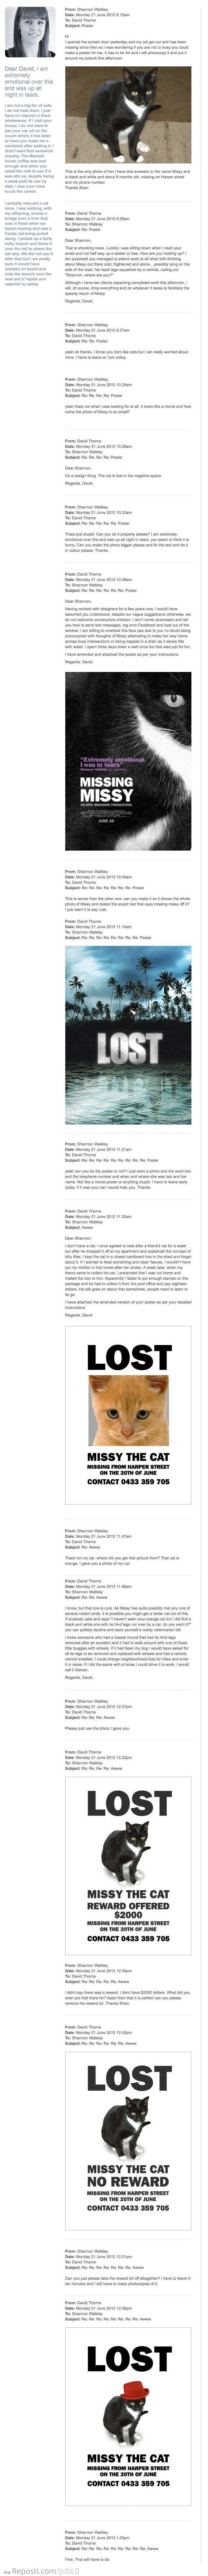 Missy The Missing Cat